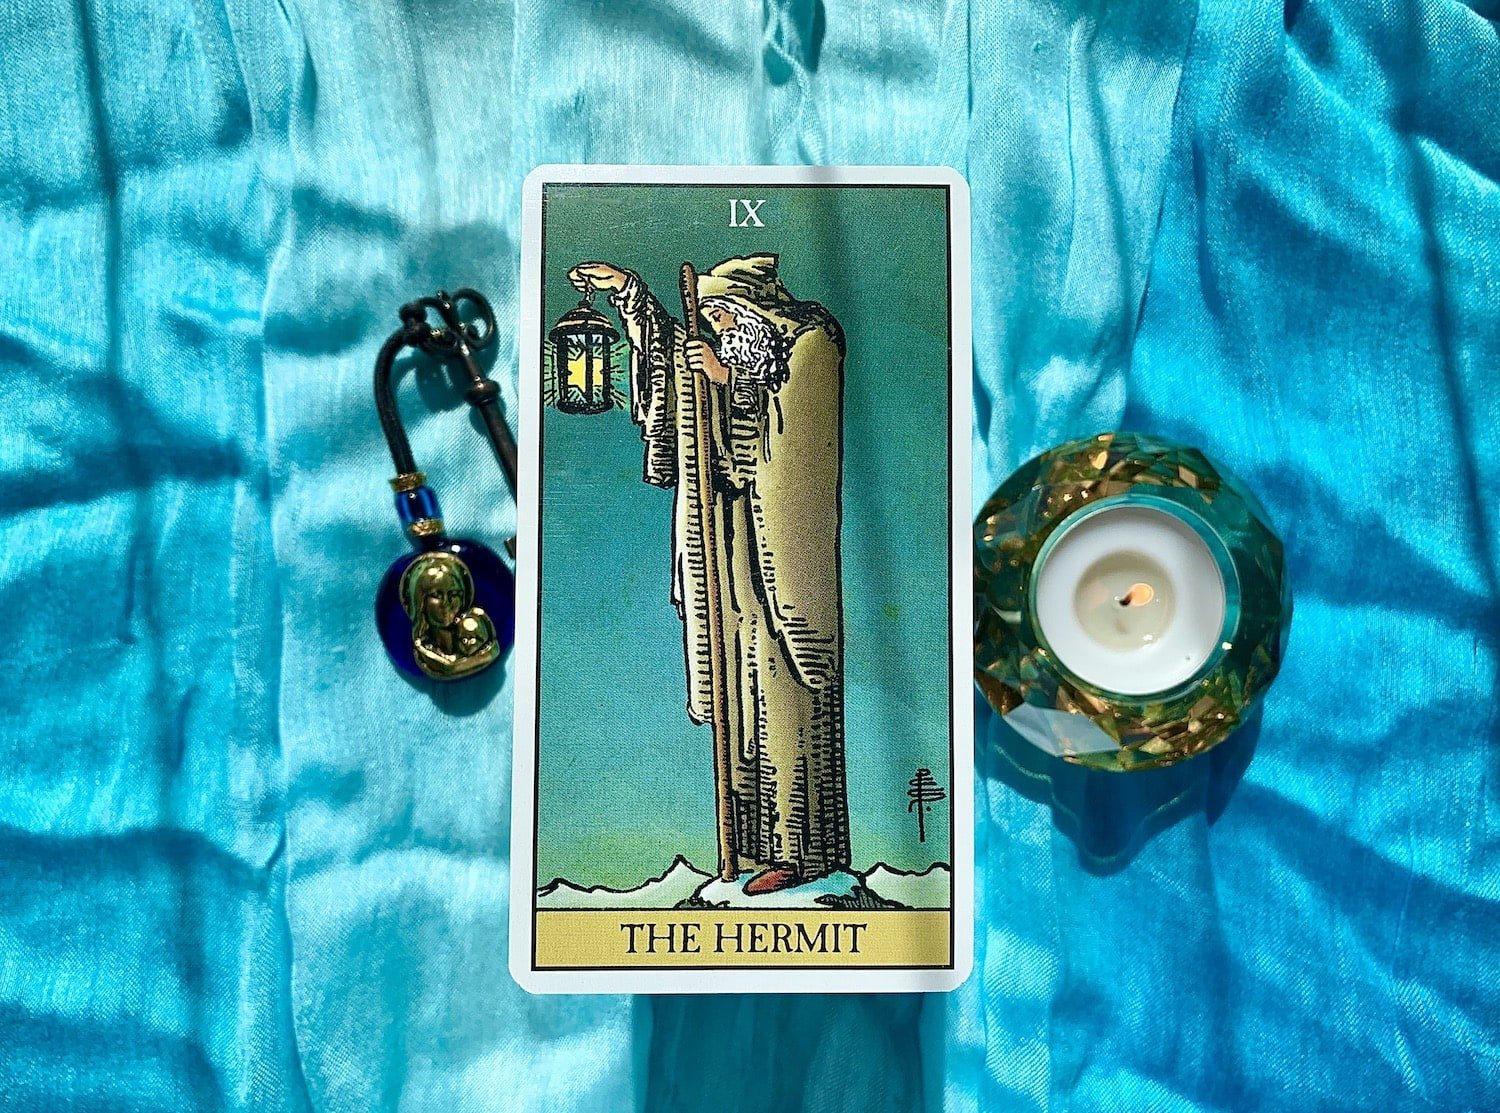 The Hermit Card of the tarot.